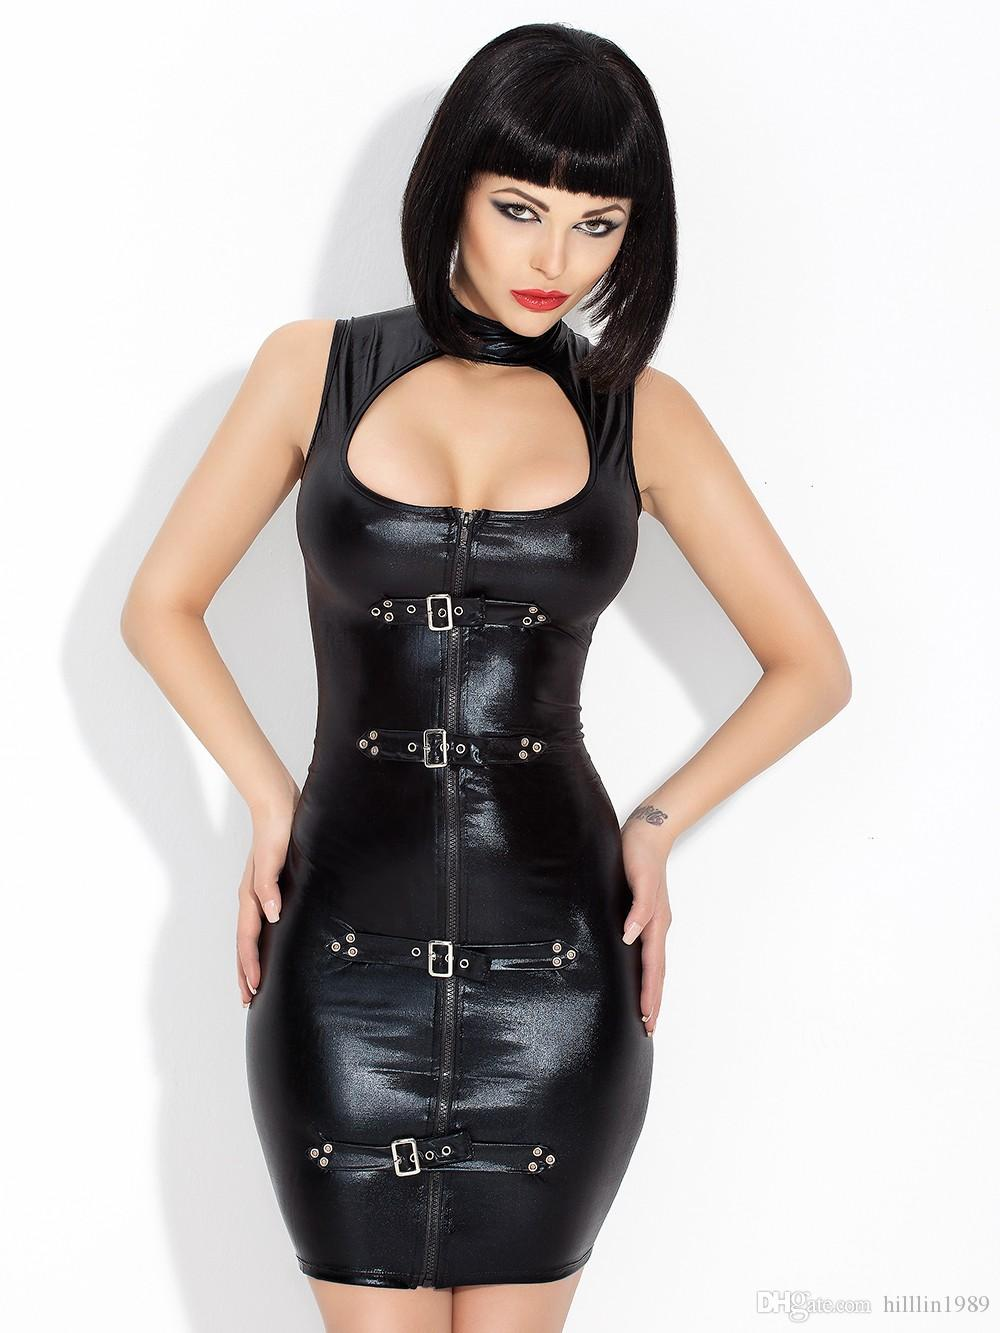 party dress hot women black vinyl sexy hollow out leather bodycon